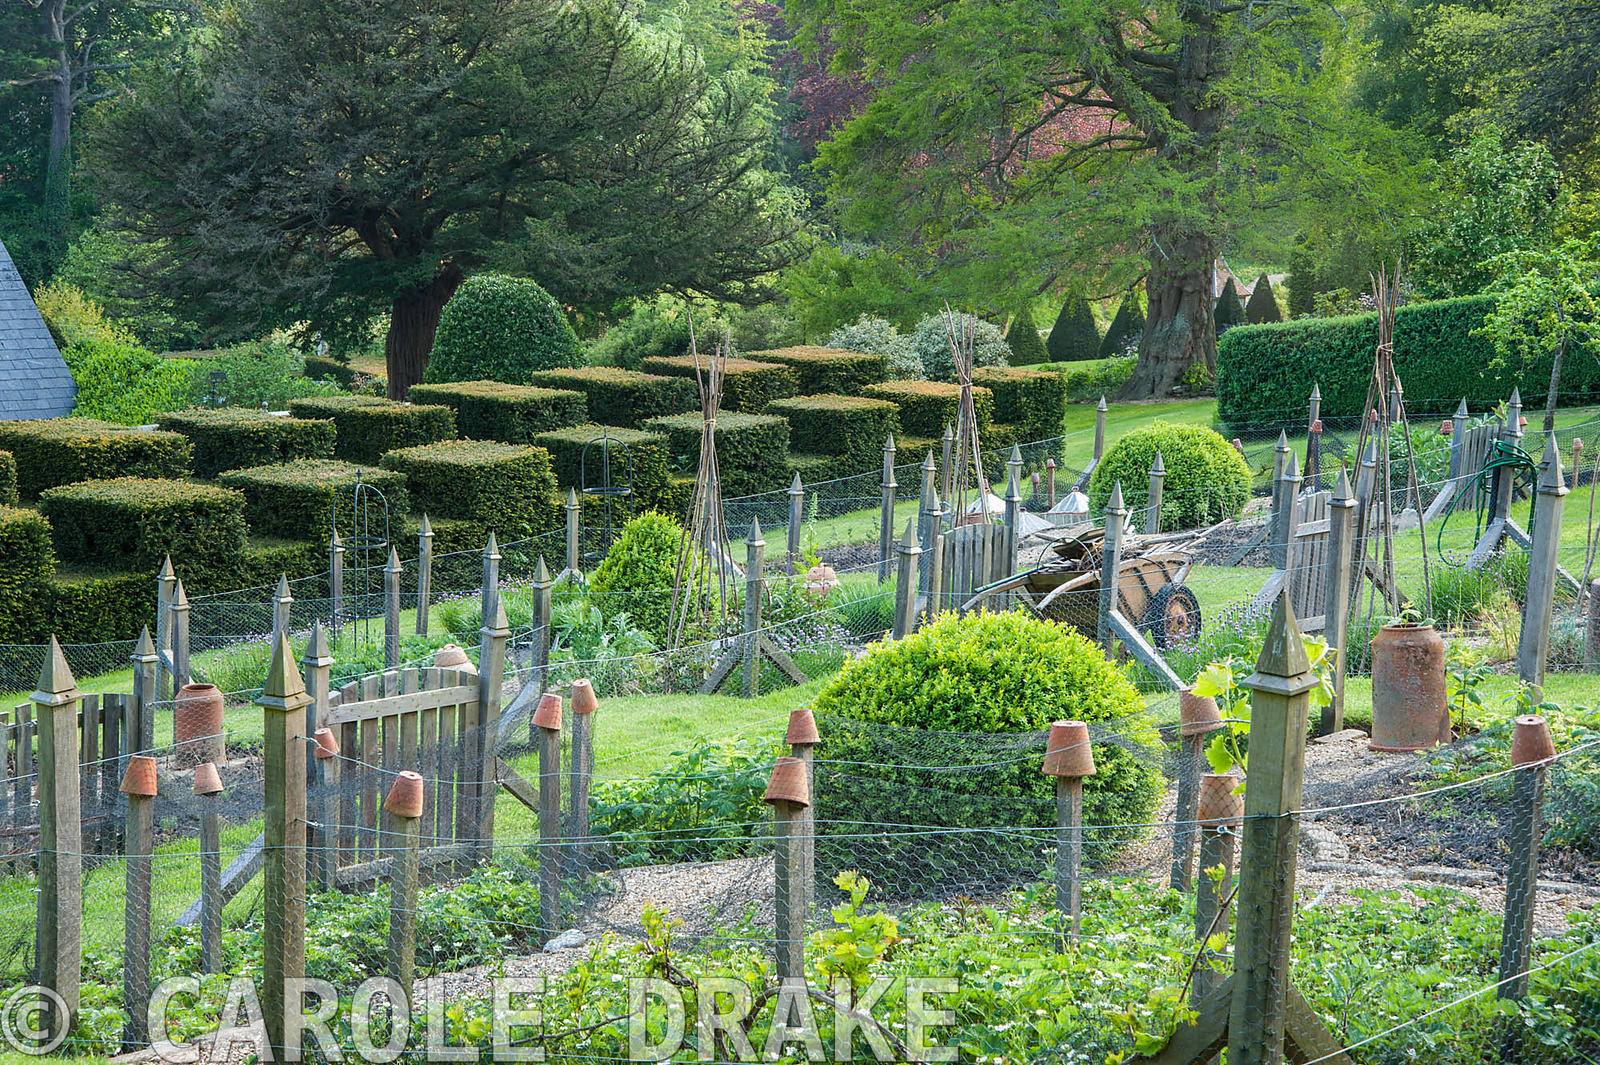 Formal vegetable garden with castellated yew walk below. The Old Rectory, Netherbury, Dorset, UK